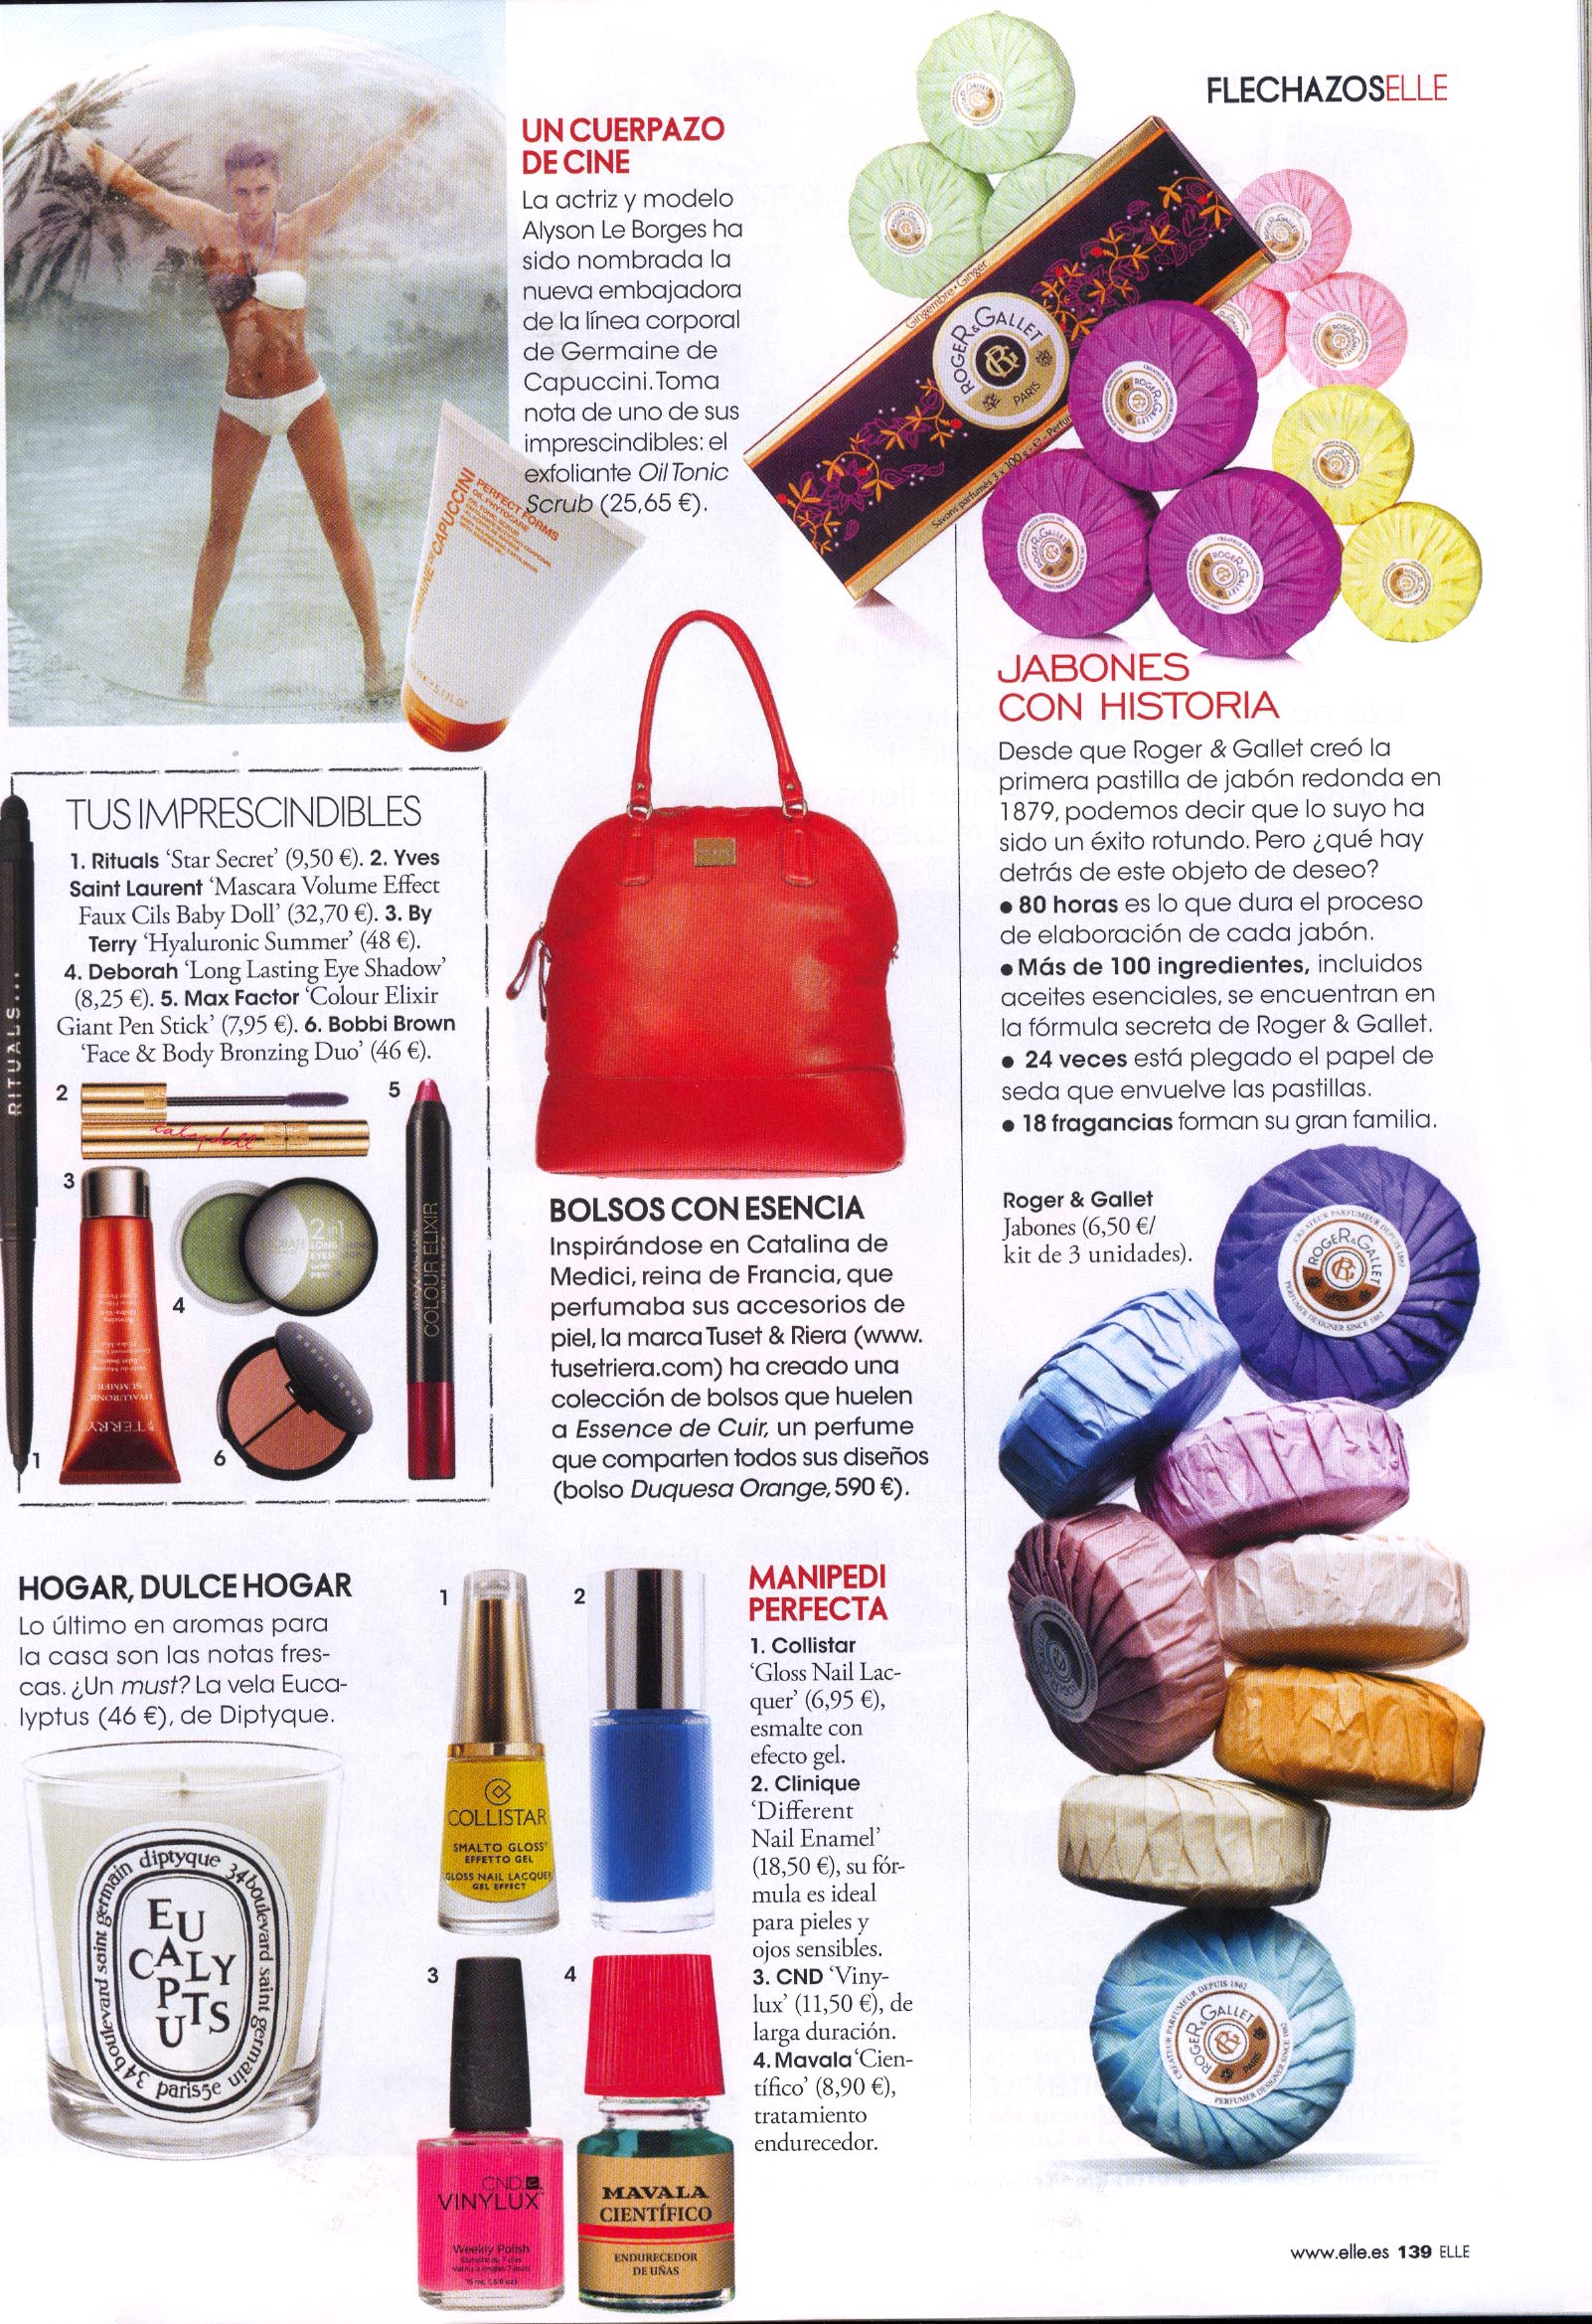 PERFECT FORMS OIL PHYTOCARE ( ELLE ) 01/07/2013